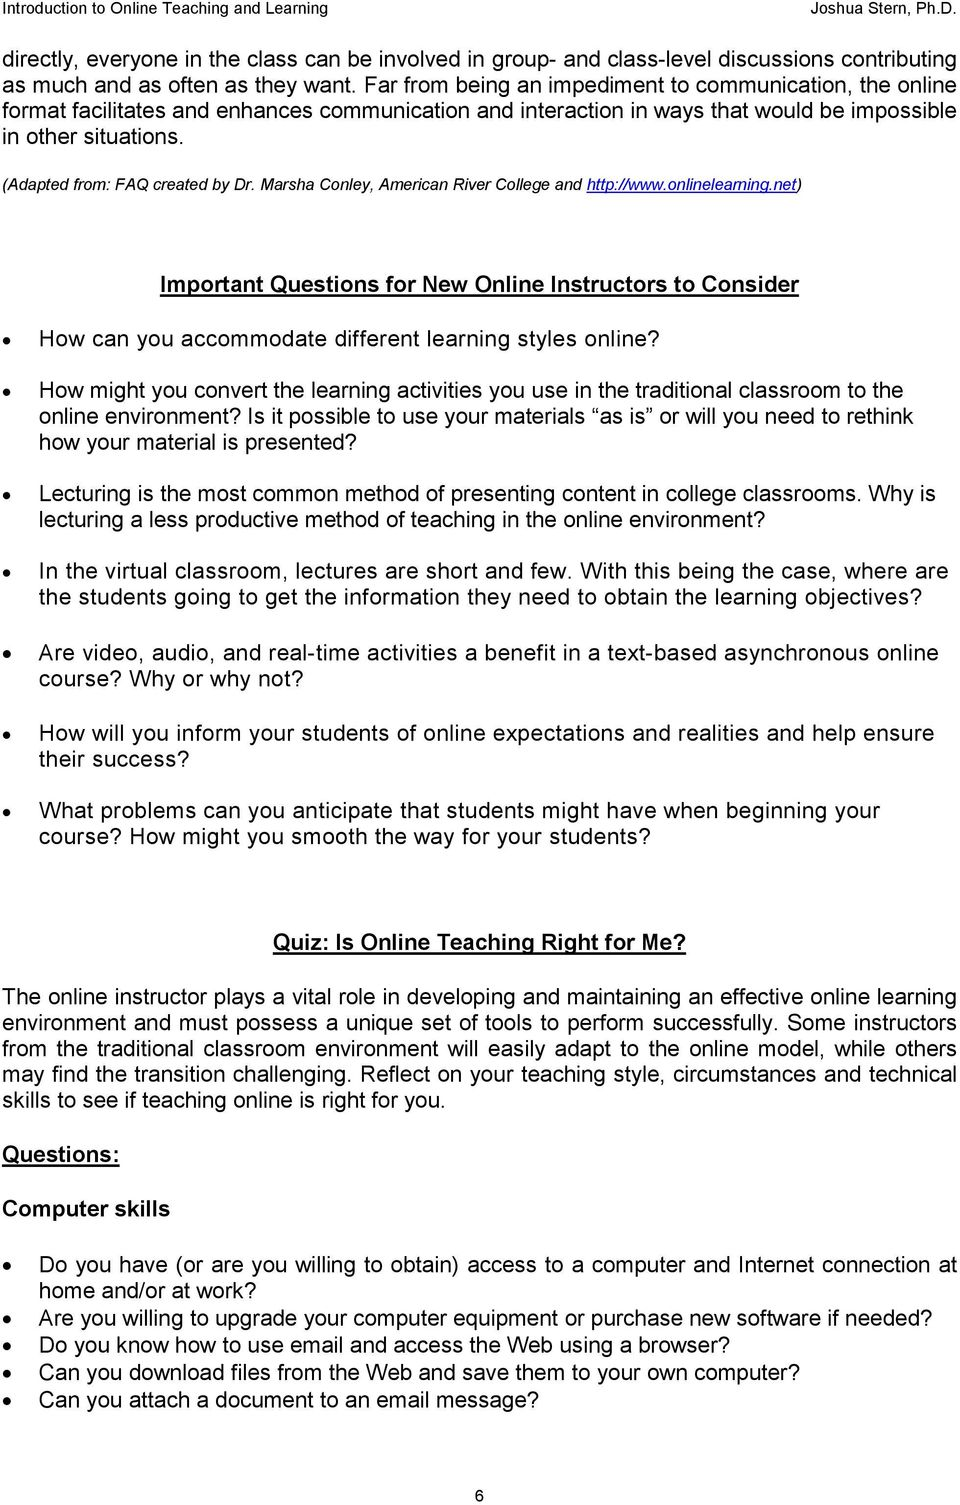 (Adapted from: FAQ created by Dr. Marsha Conley, American River College and http://www.onlinelearning.